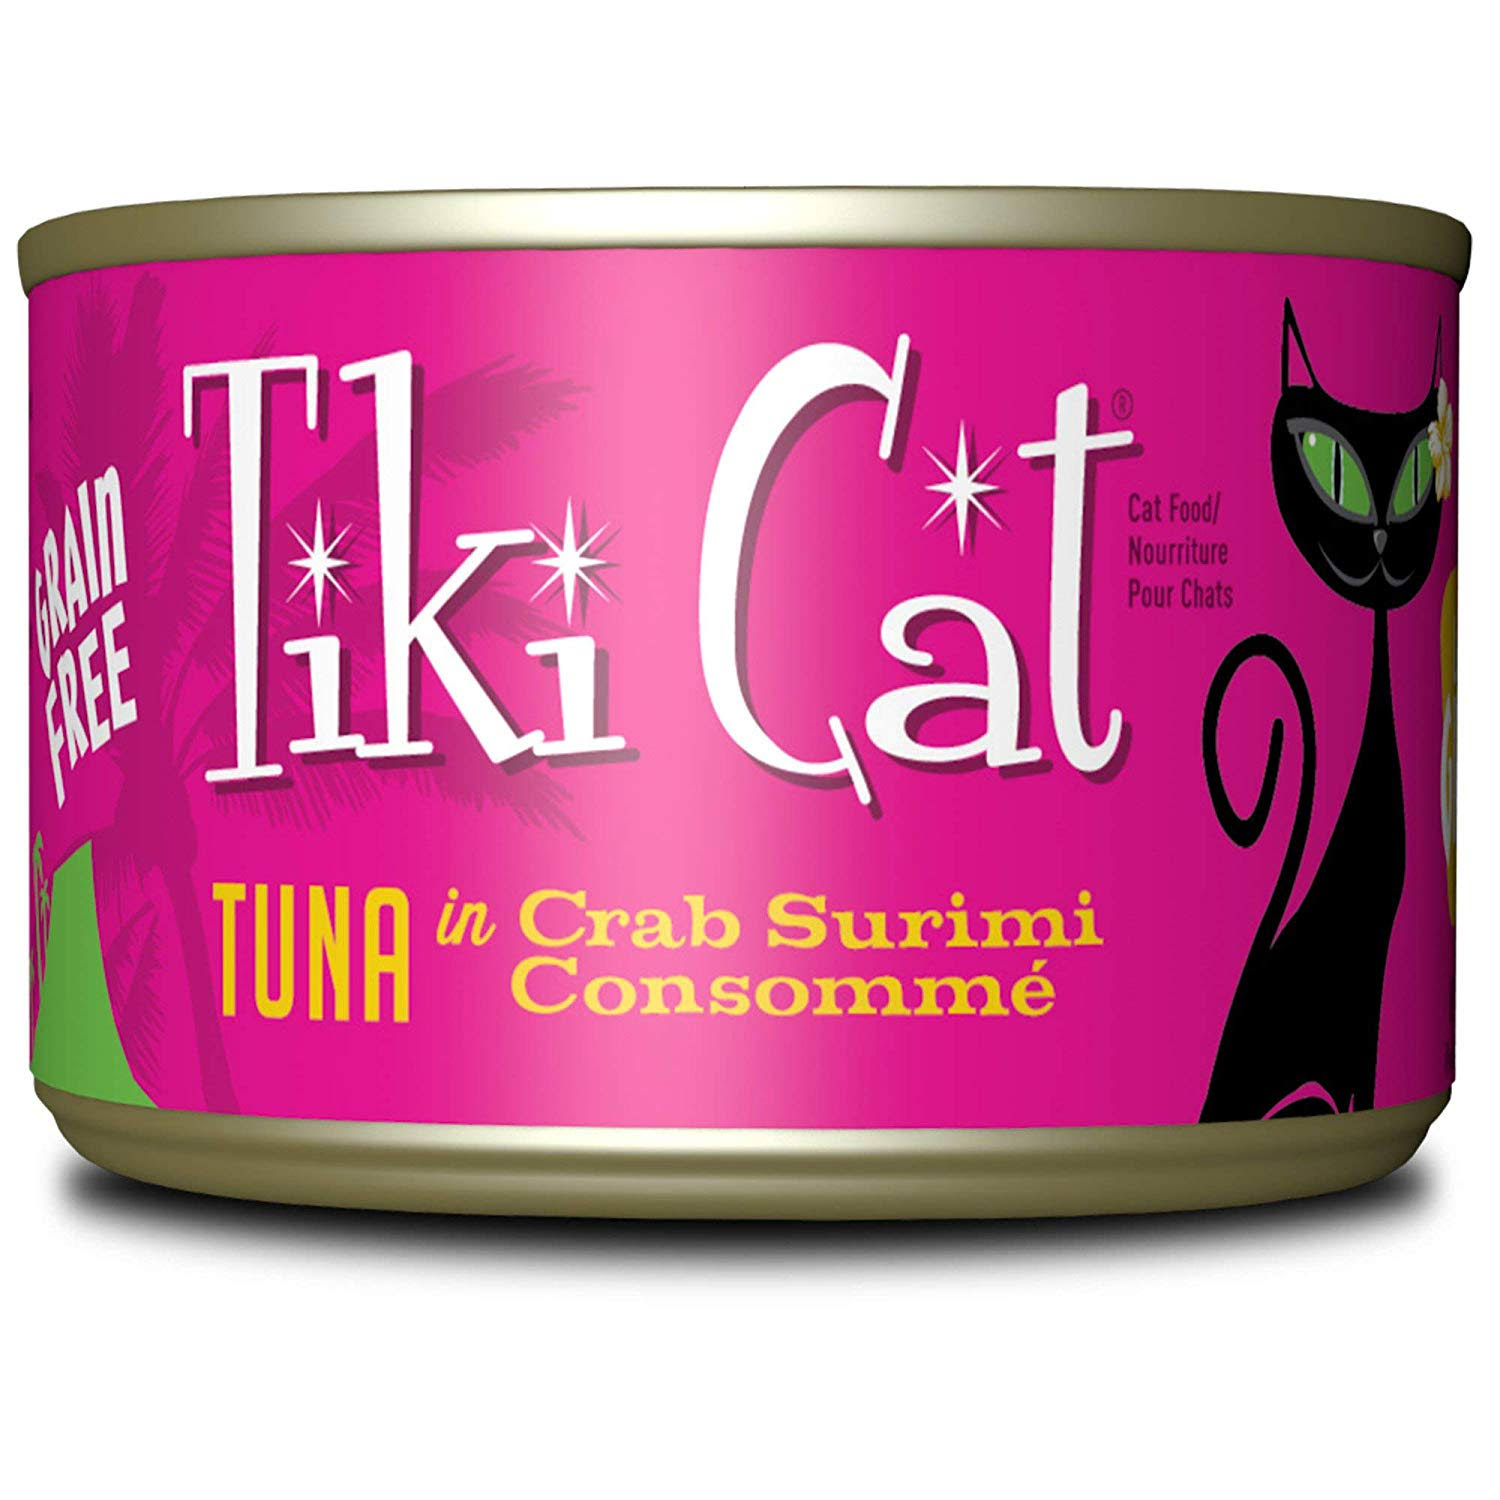 Tiki Pet Canned Cat Food Grill Lanai Tuna Crab 6oz